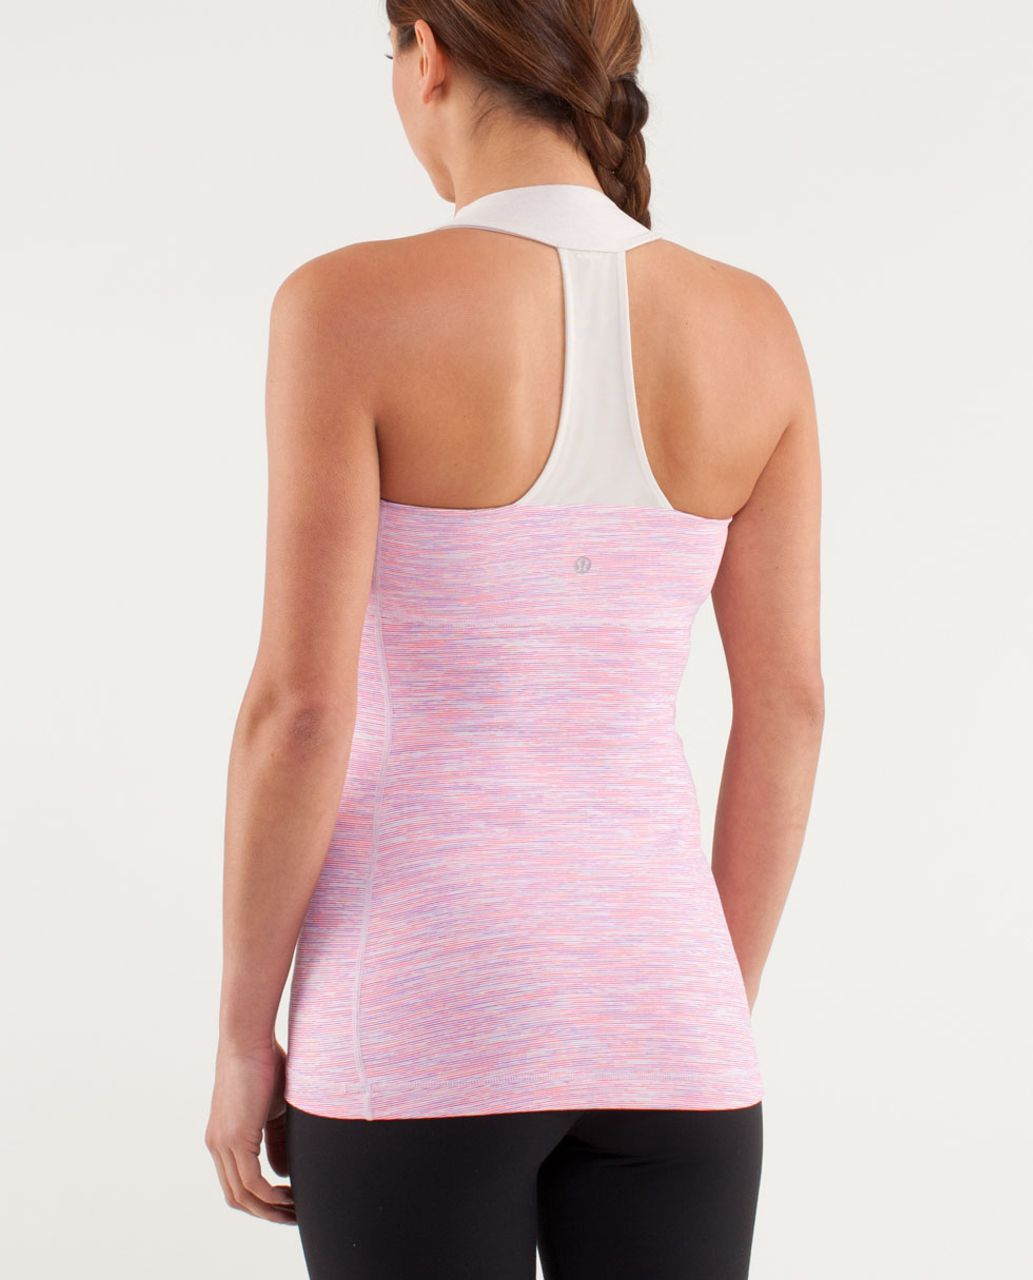 Lululemon Scoop Neck Tank - Wee Are From Space White April Multi /  Heathered Dune